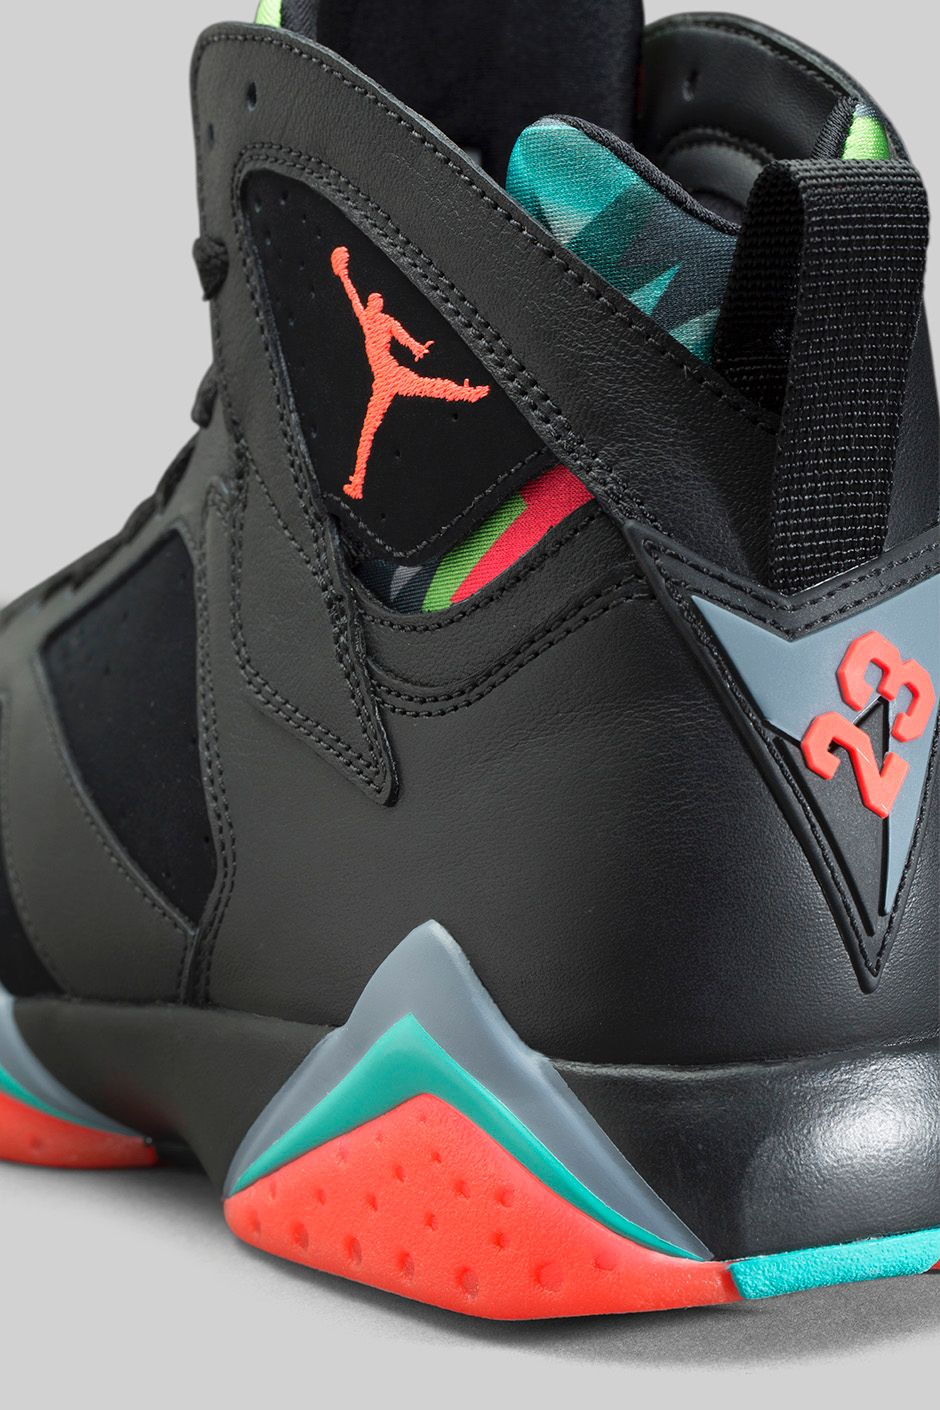 marvin-the-martian-air-jordan-7-retro-5